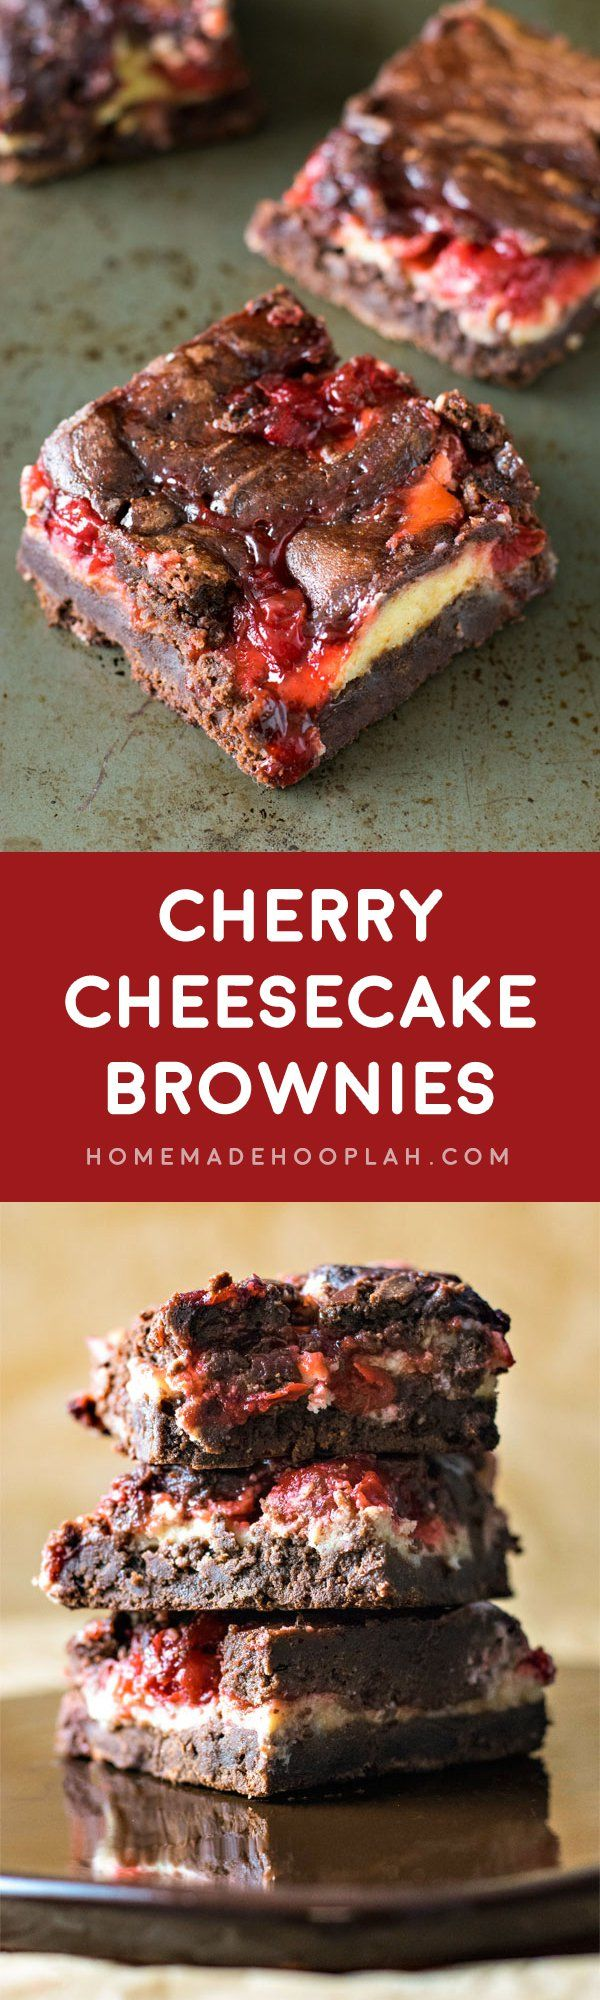 Cherry Cheesecake Brownies! The ultimate brownie recipe baked with swirls of cheesecake and cherry pie filling. | HomemadeHooplah.com